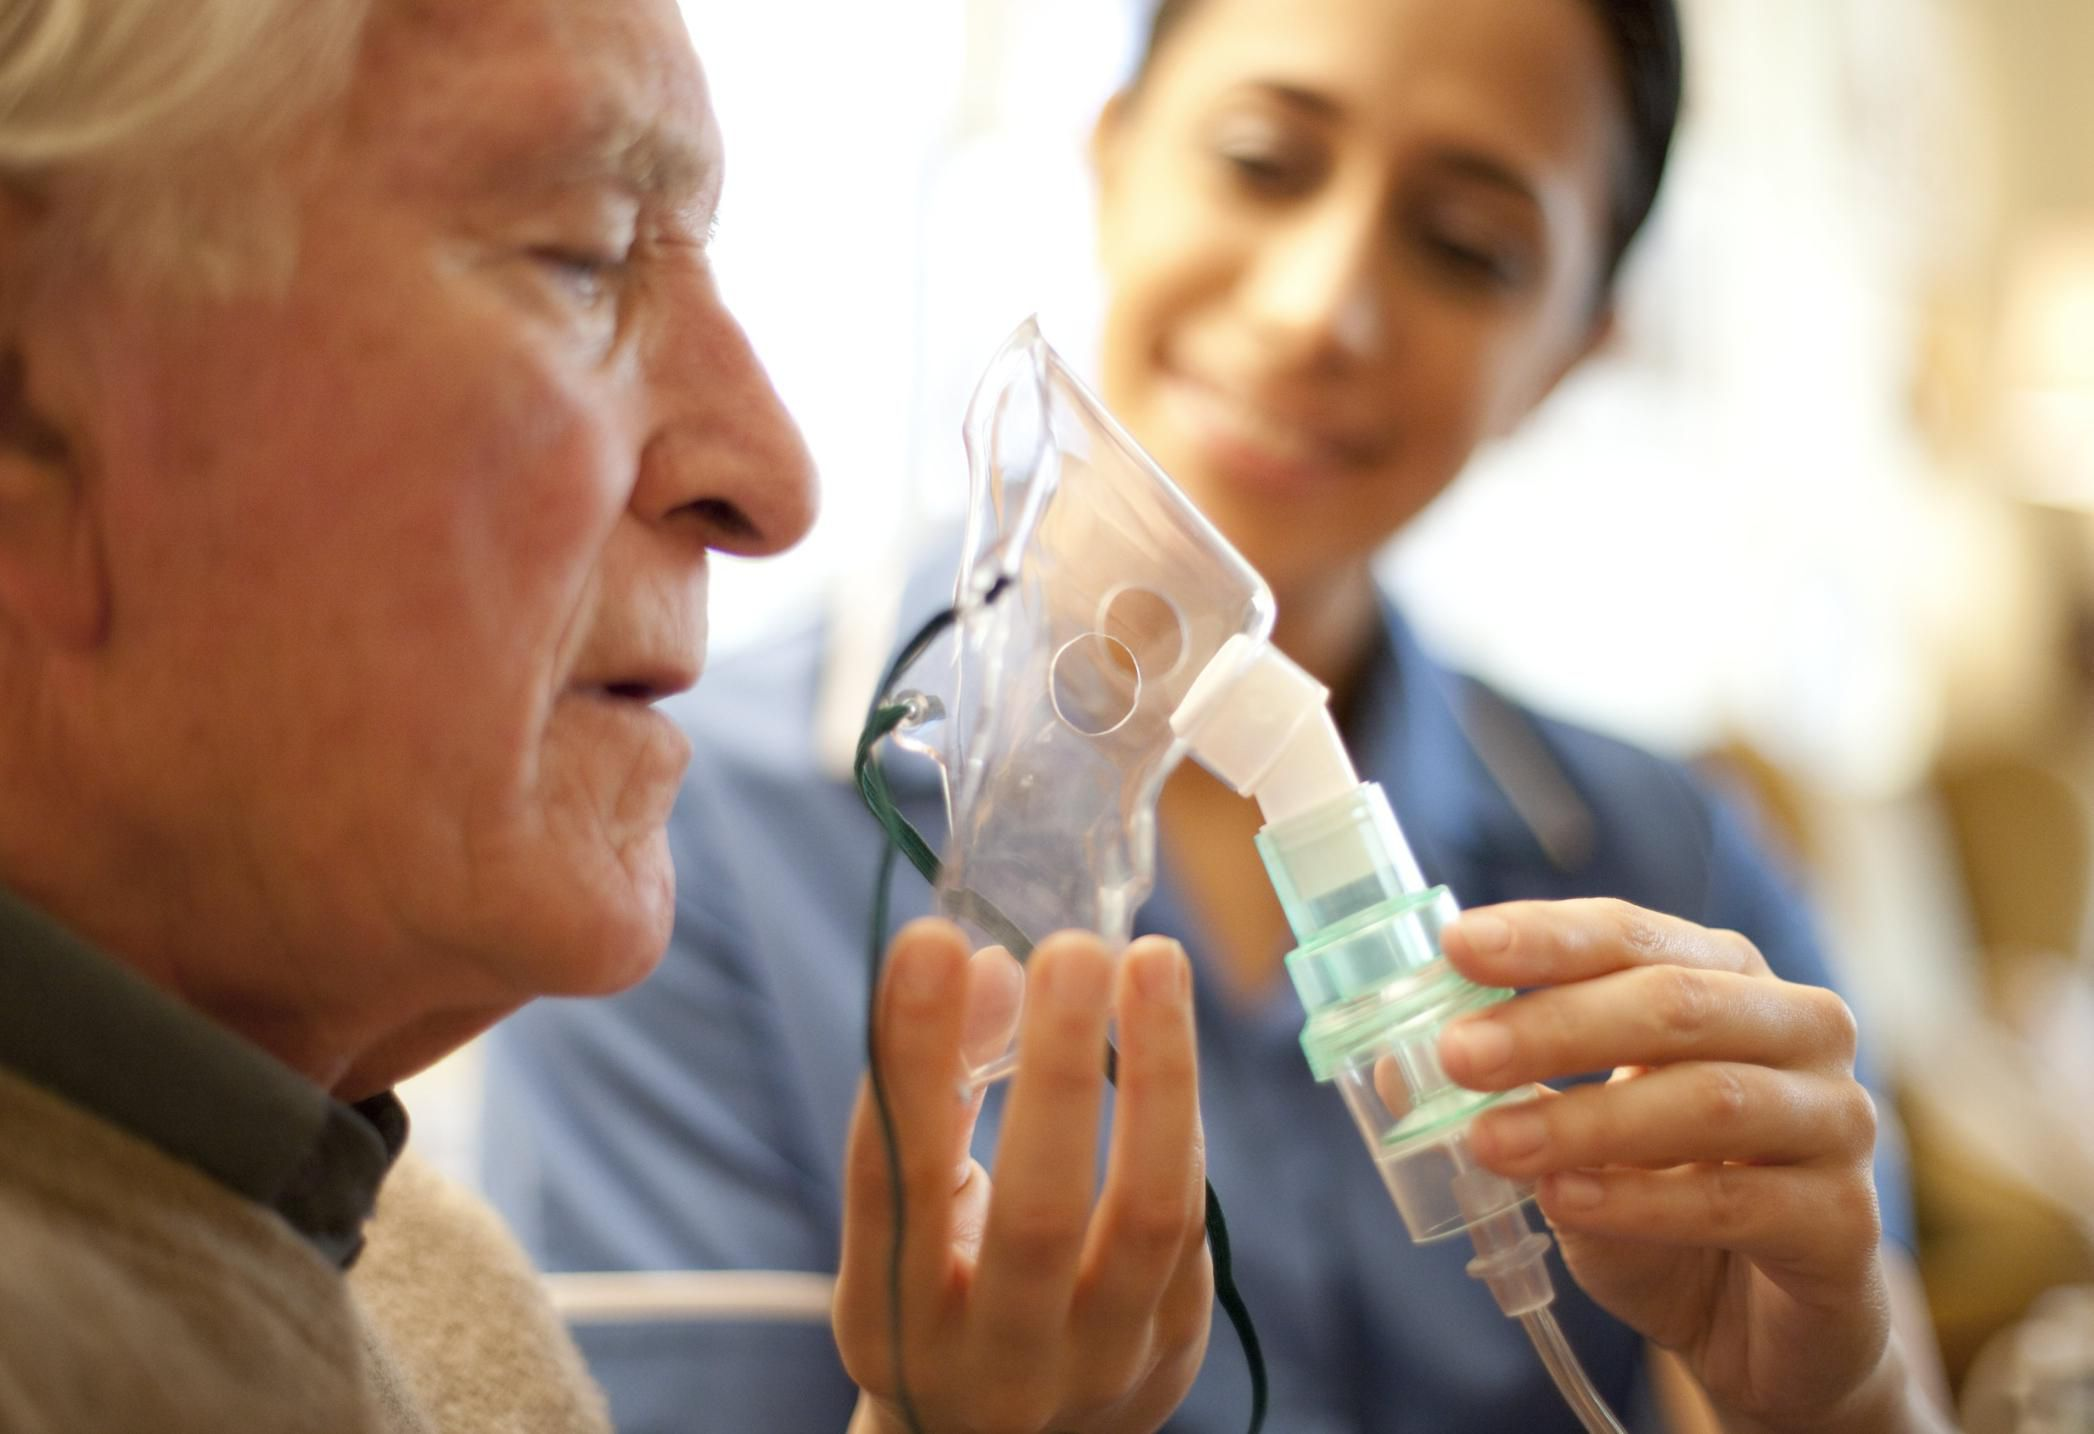 Medical Oxygen Supplies Covered by Medicare